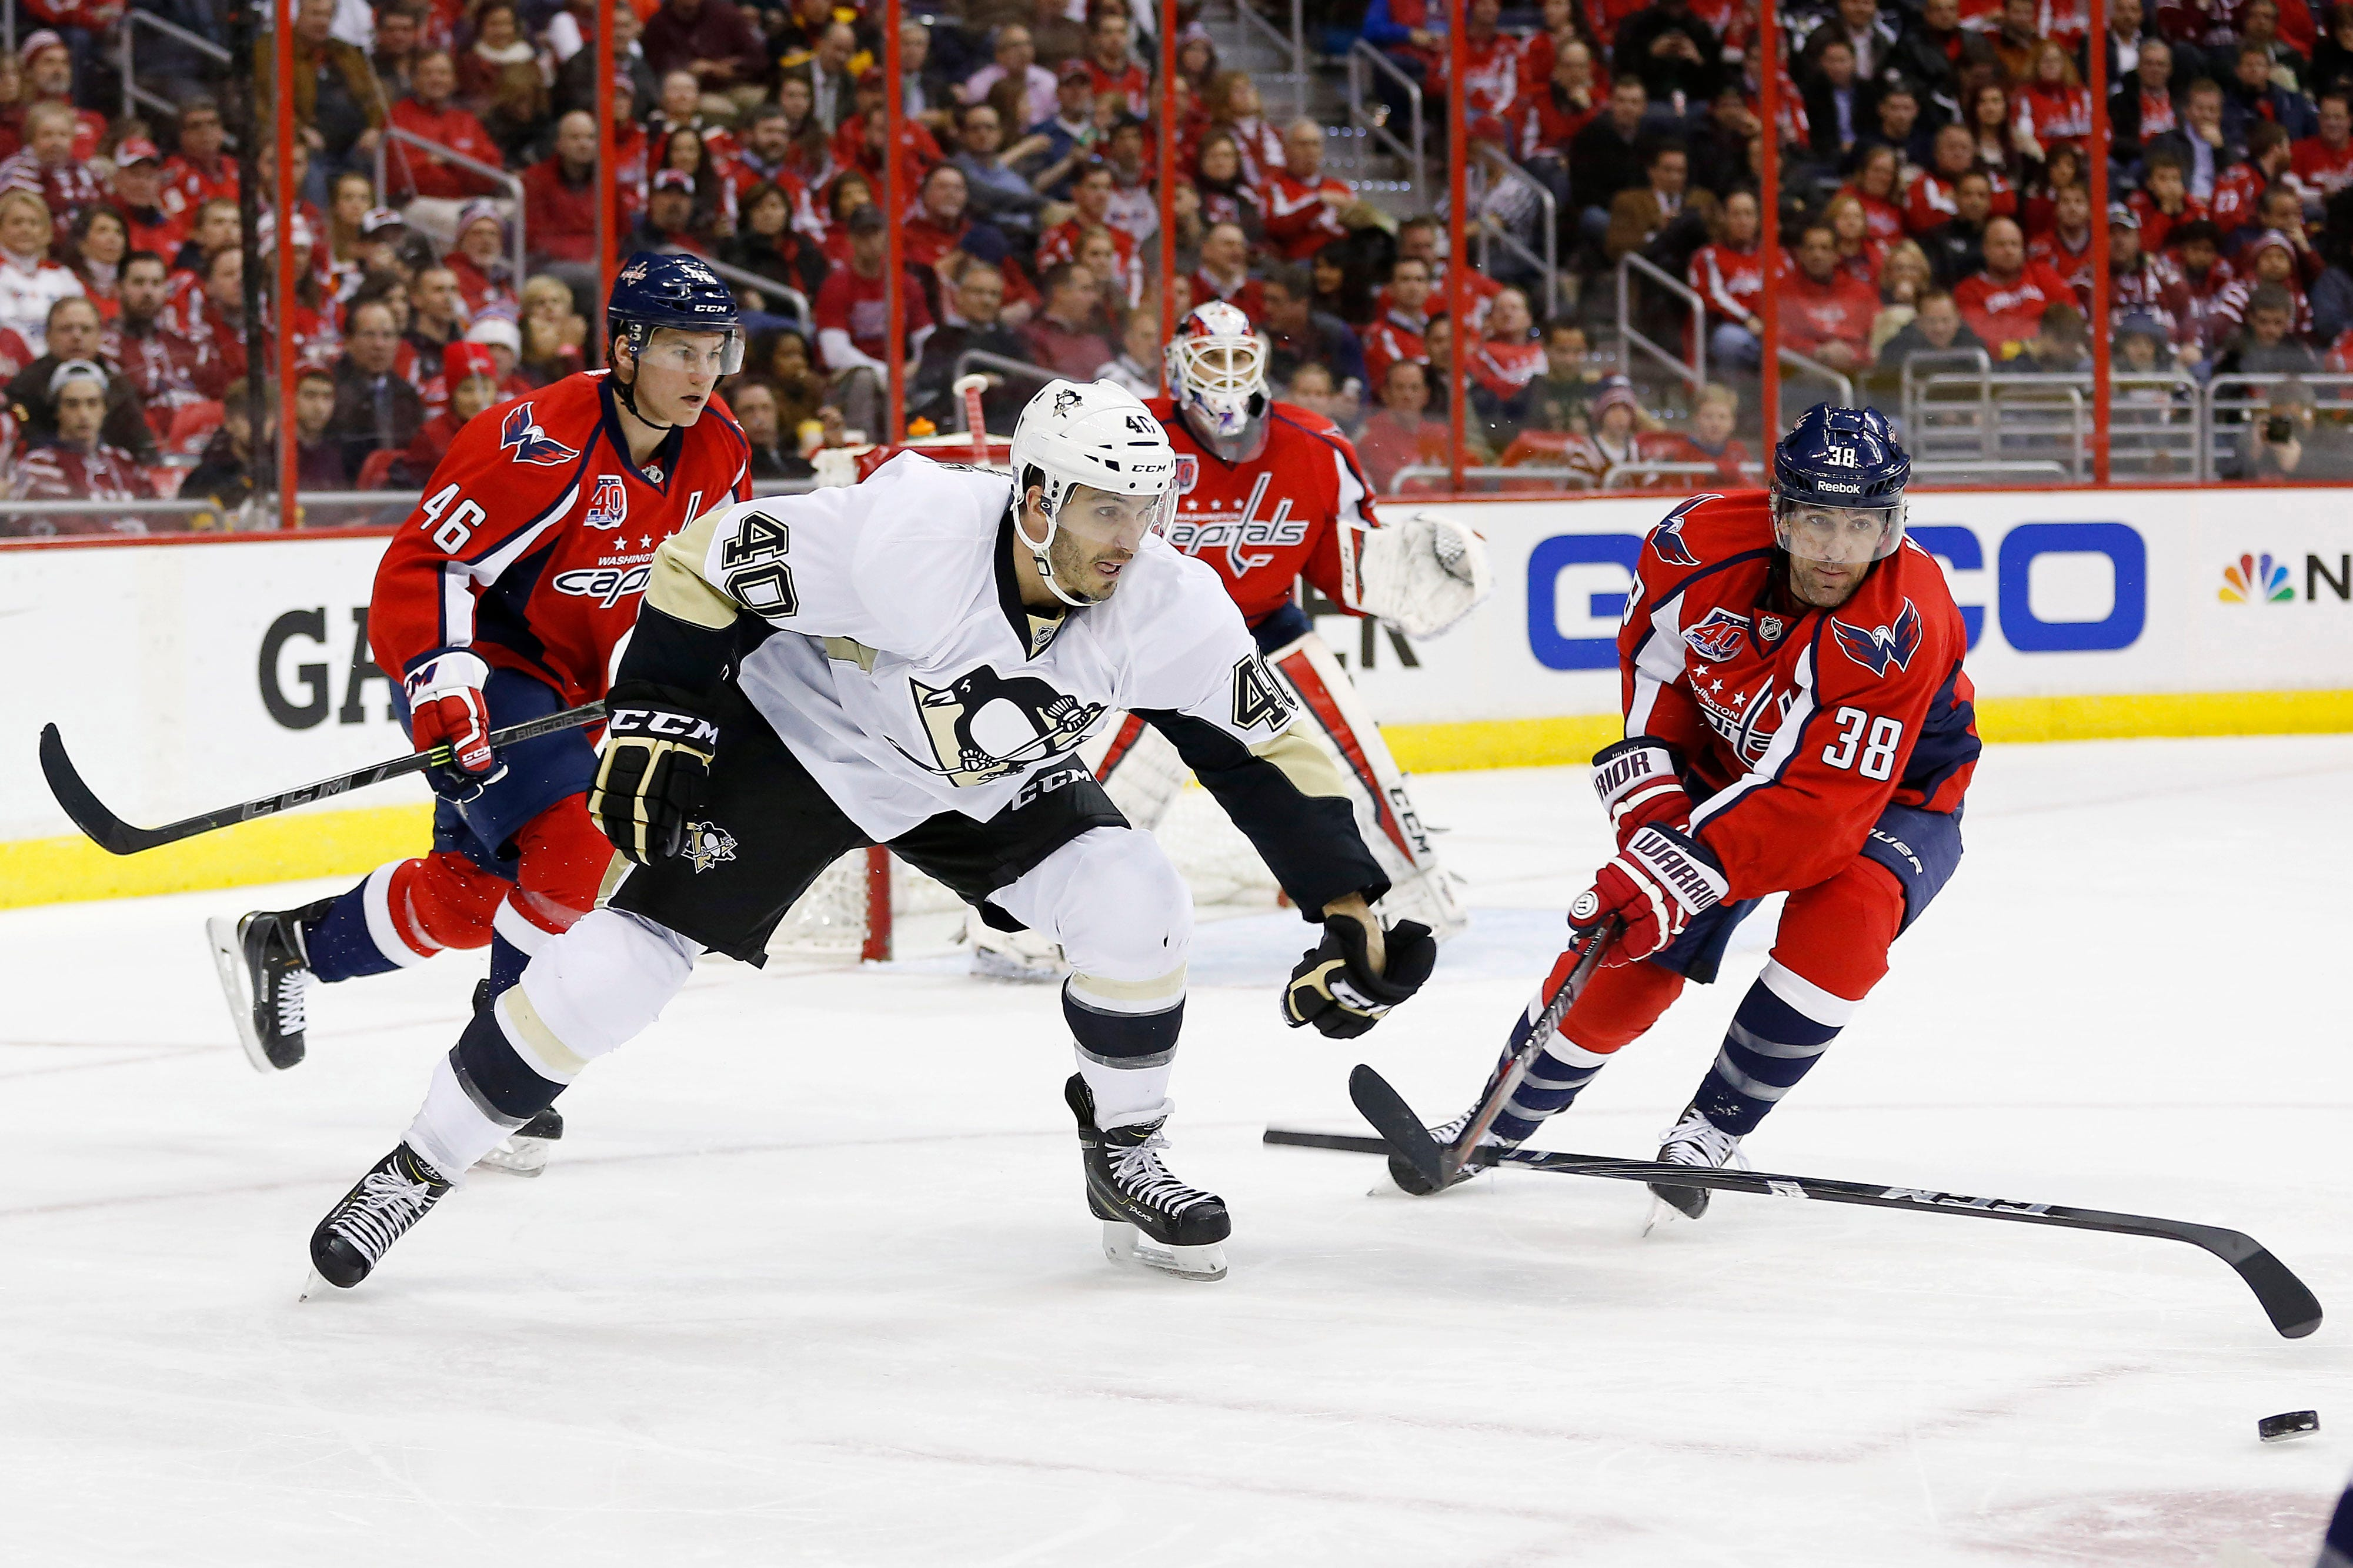 photo relating to Washington Capitals Printable Schedule referred to as Ovi results in being 2; Crosby struggles as Capitals blank Penguins 4-0